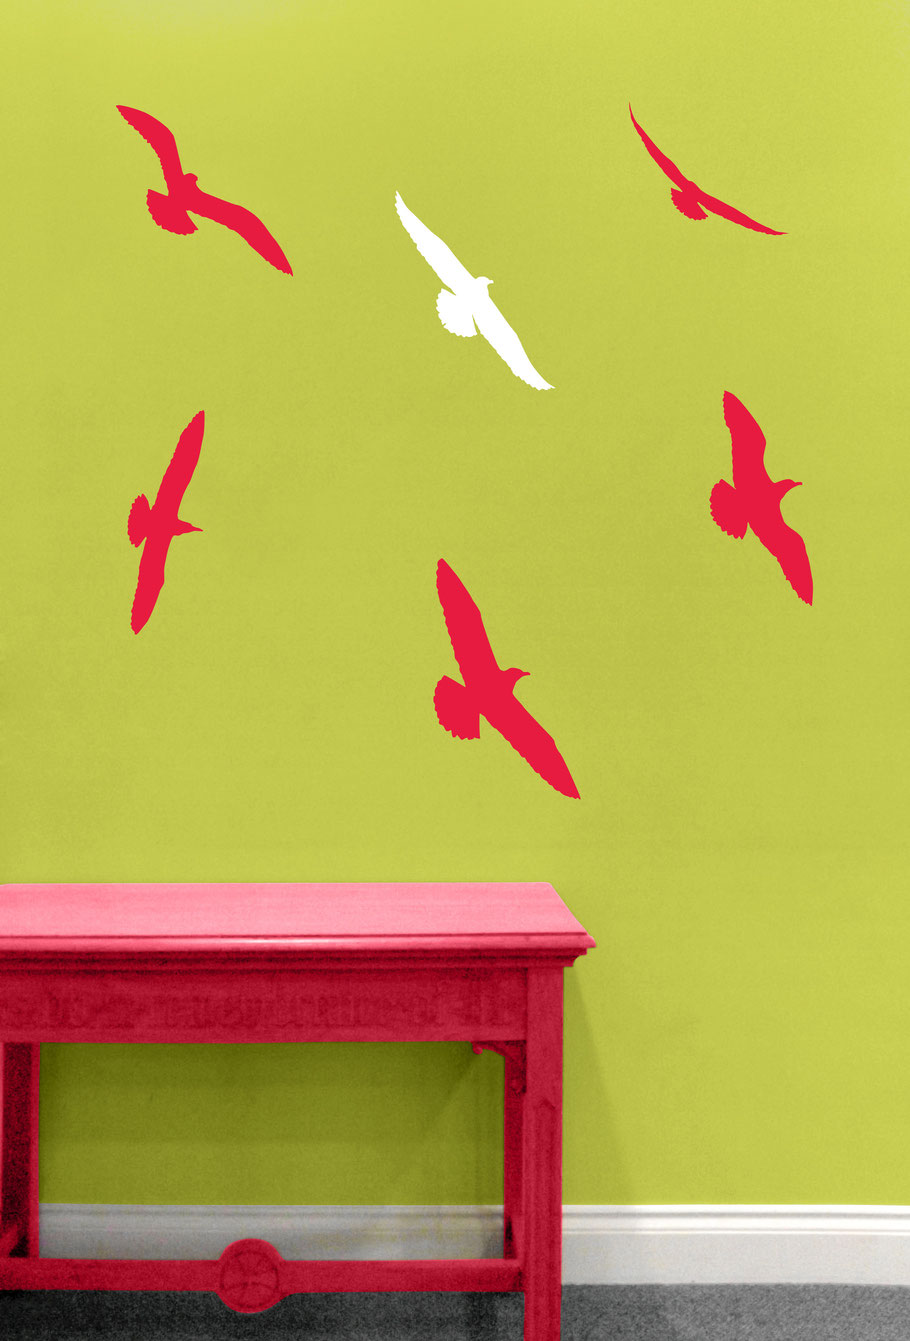 A collection of six pink vinyl sticker seagulls arranged to swoop and soar on a green wall in a living room.